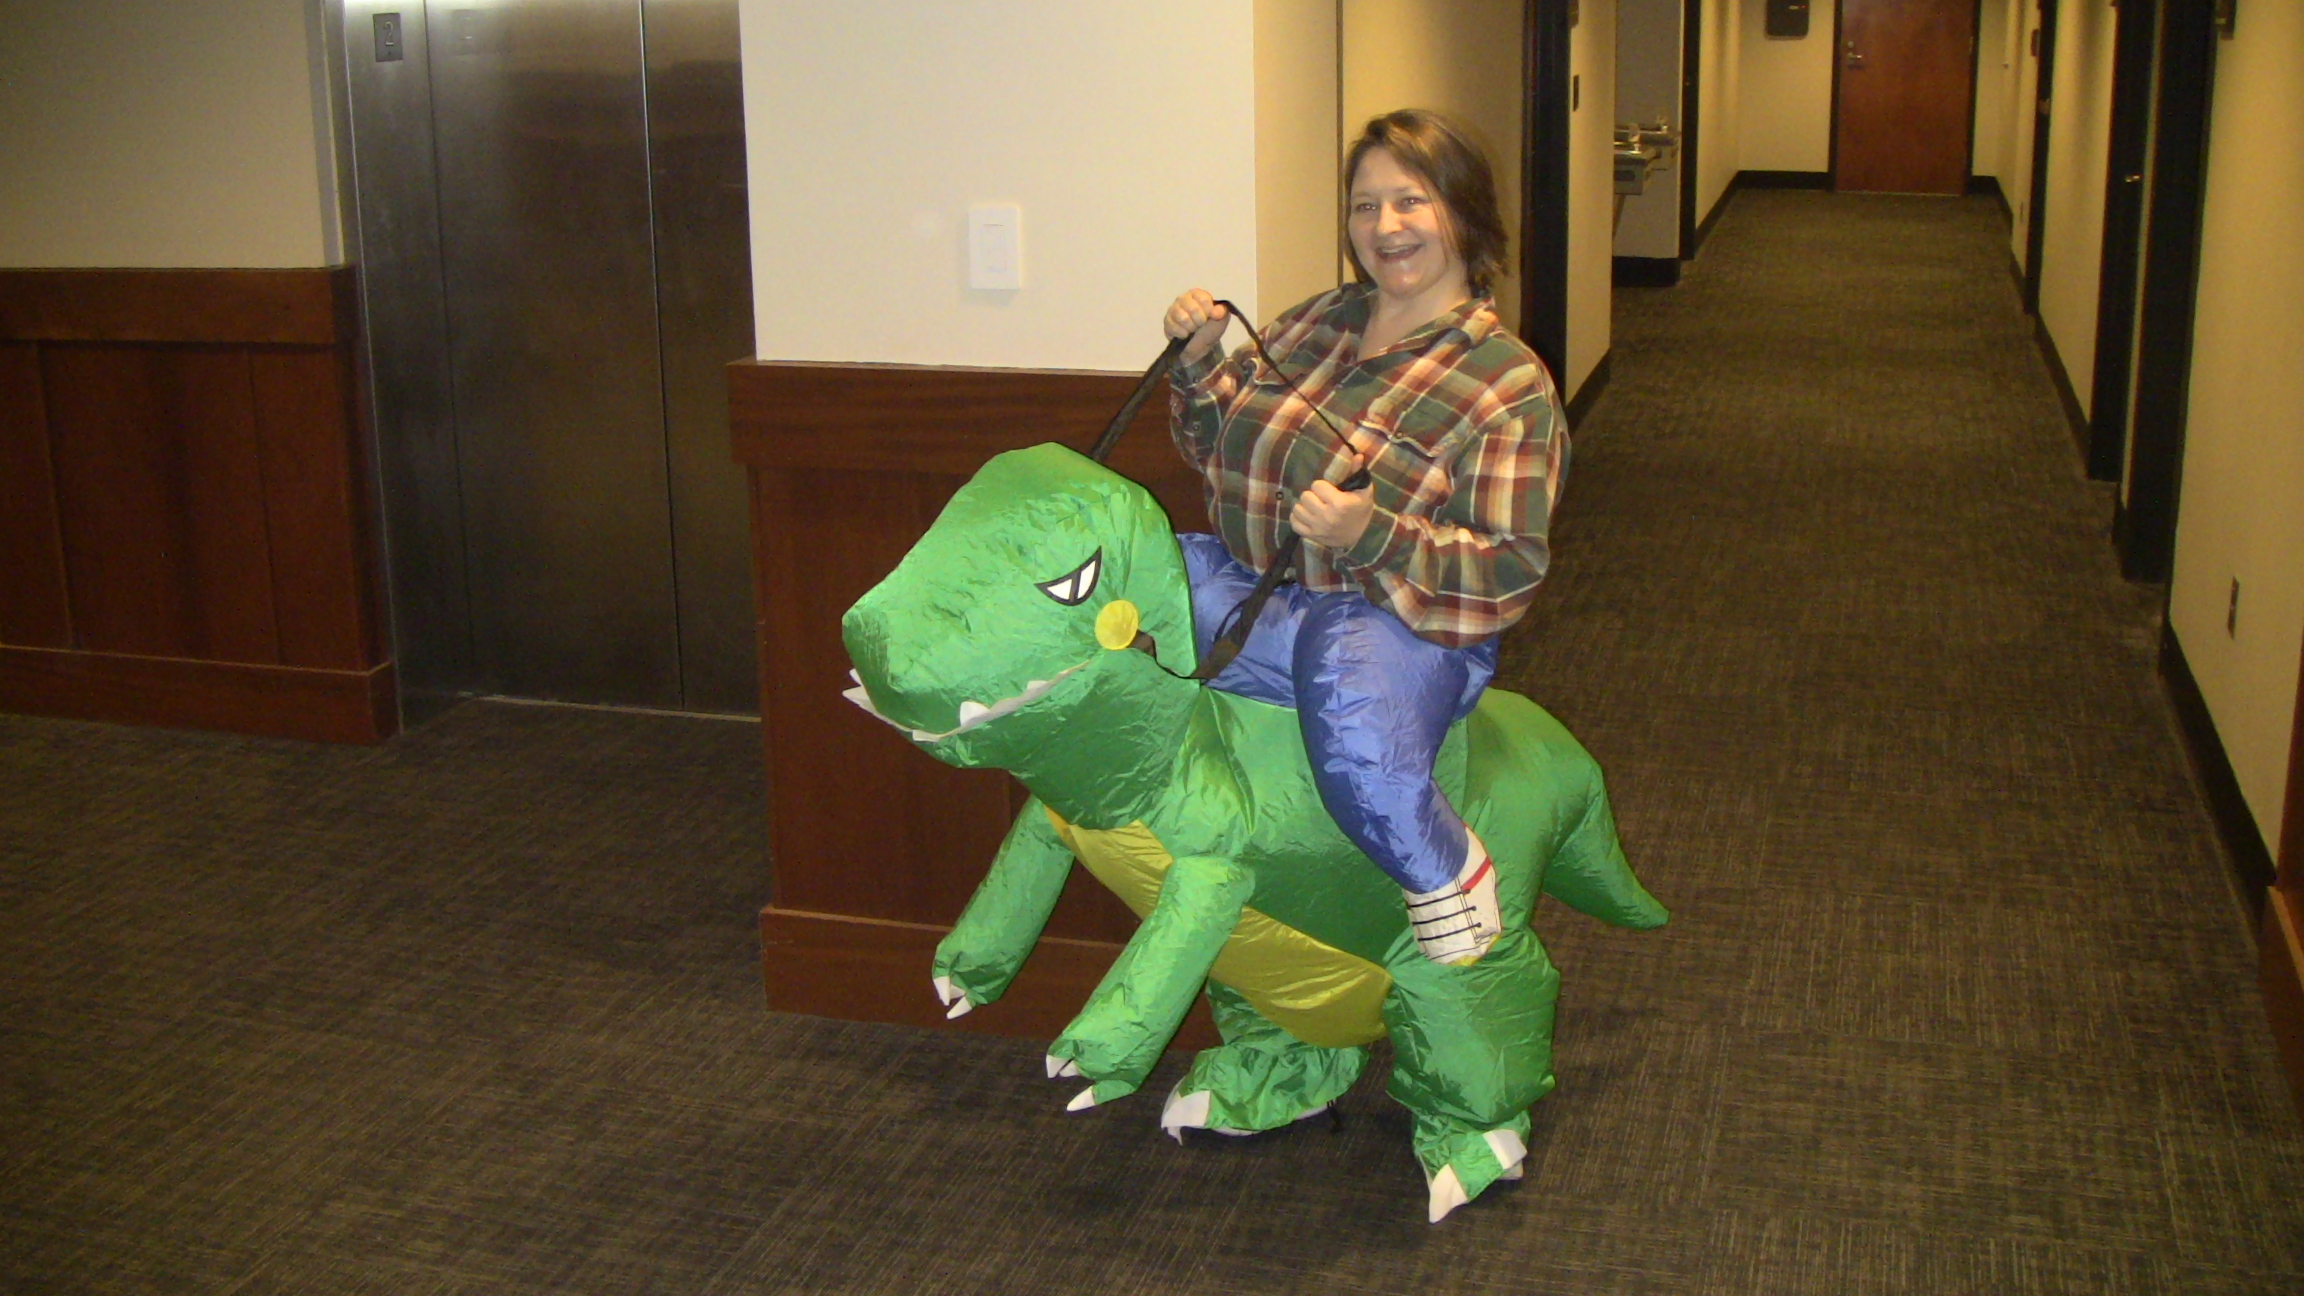 SDS Access Services Advisor, Robin Yekaitis, rides in on her pet dinosaur, Rex, for Halloween.